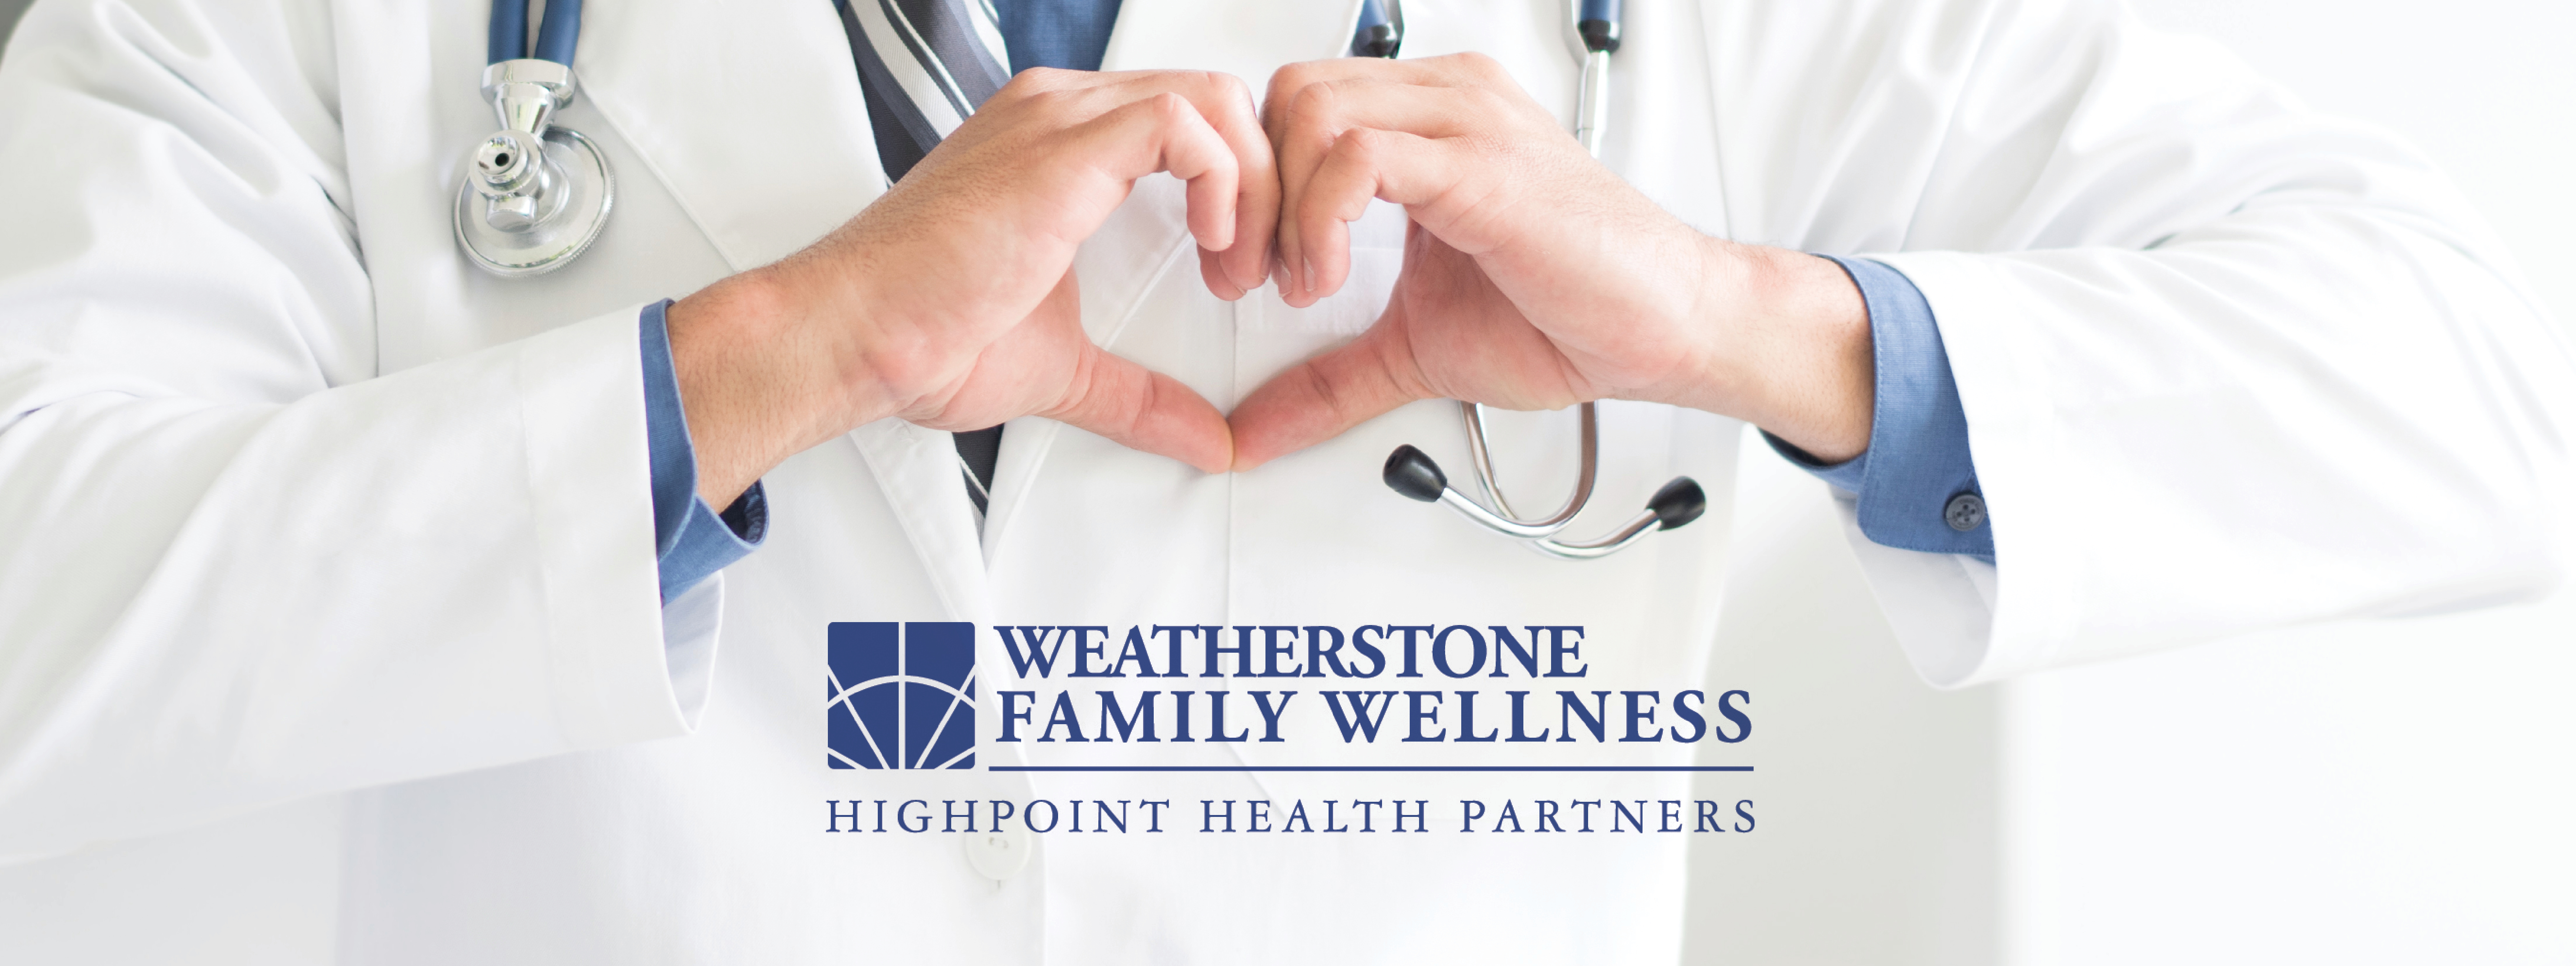 Weatherstone Family Wellness • 615-325-6755 • 307 S